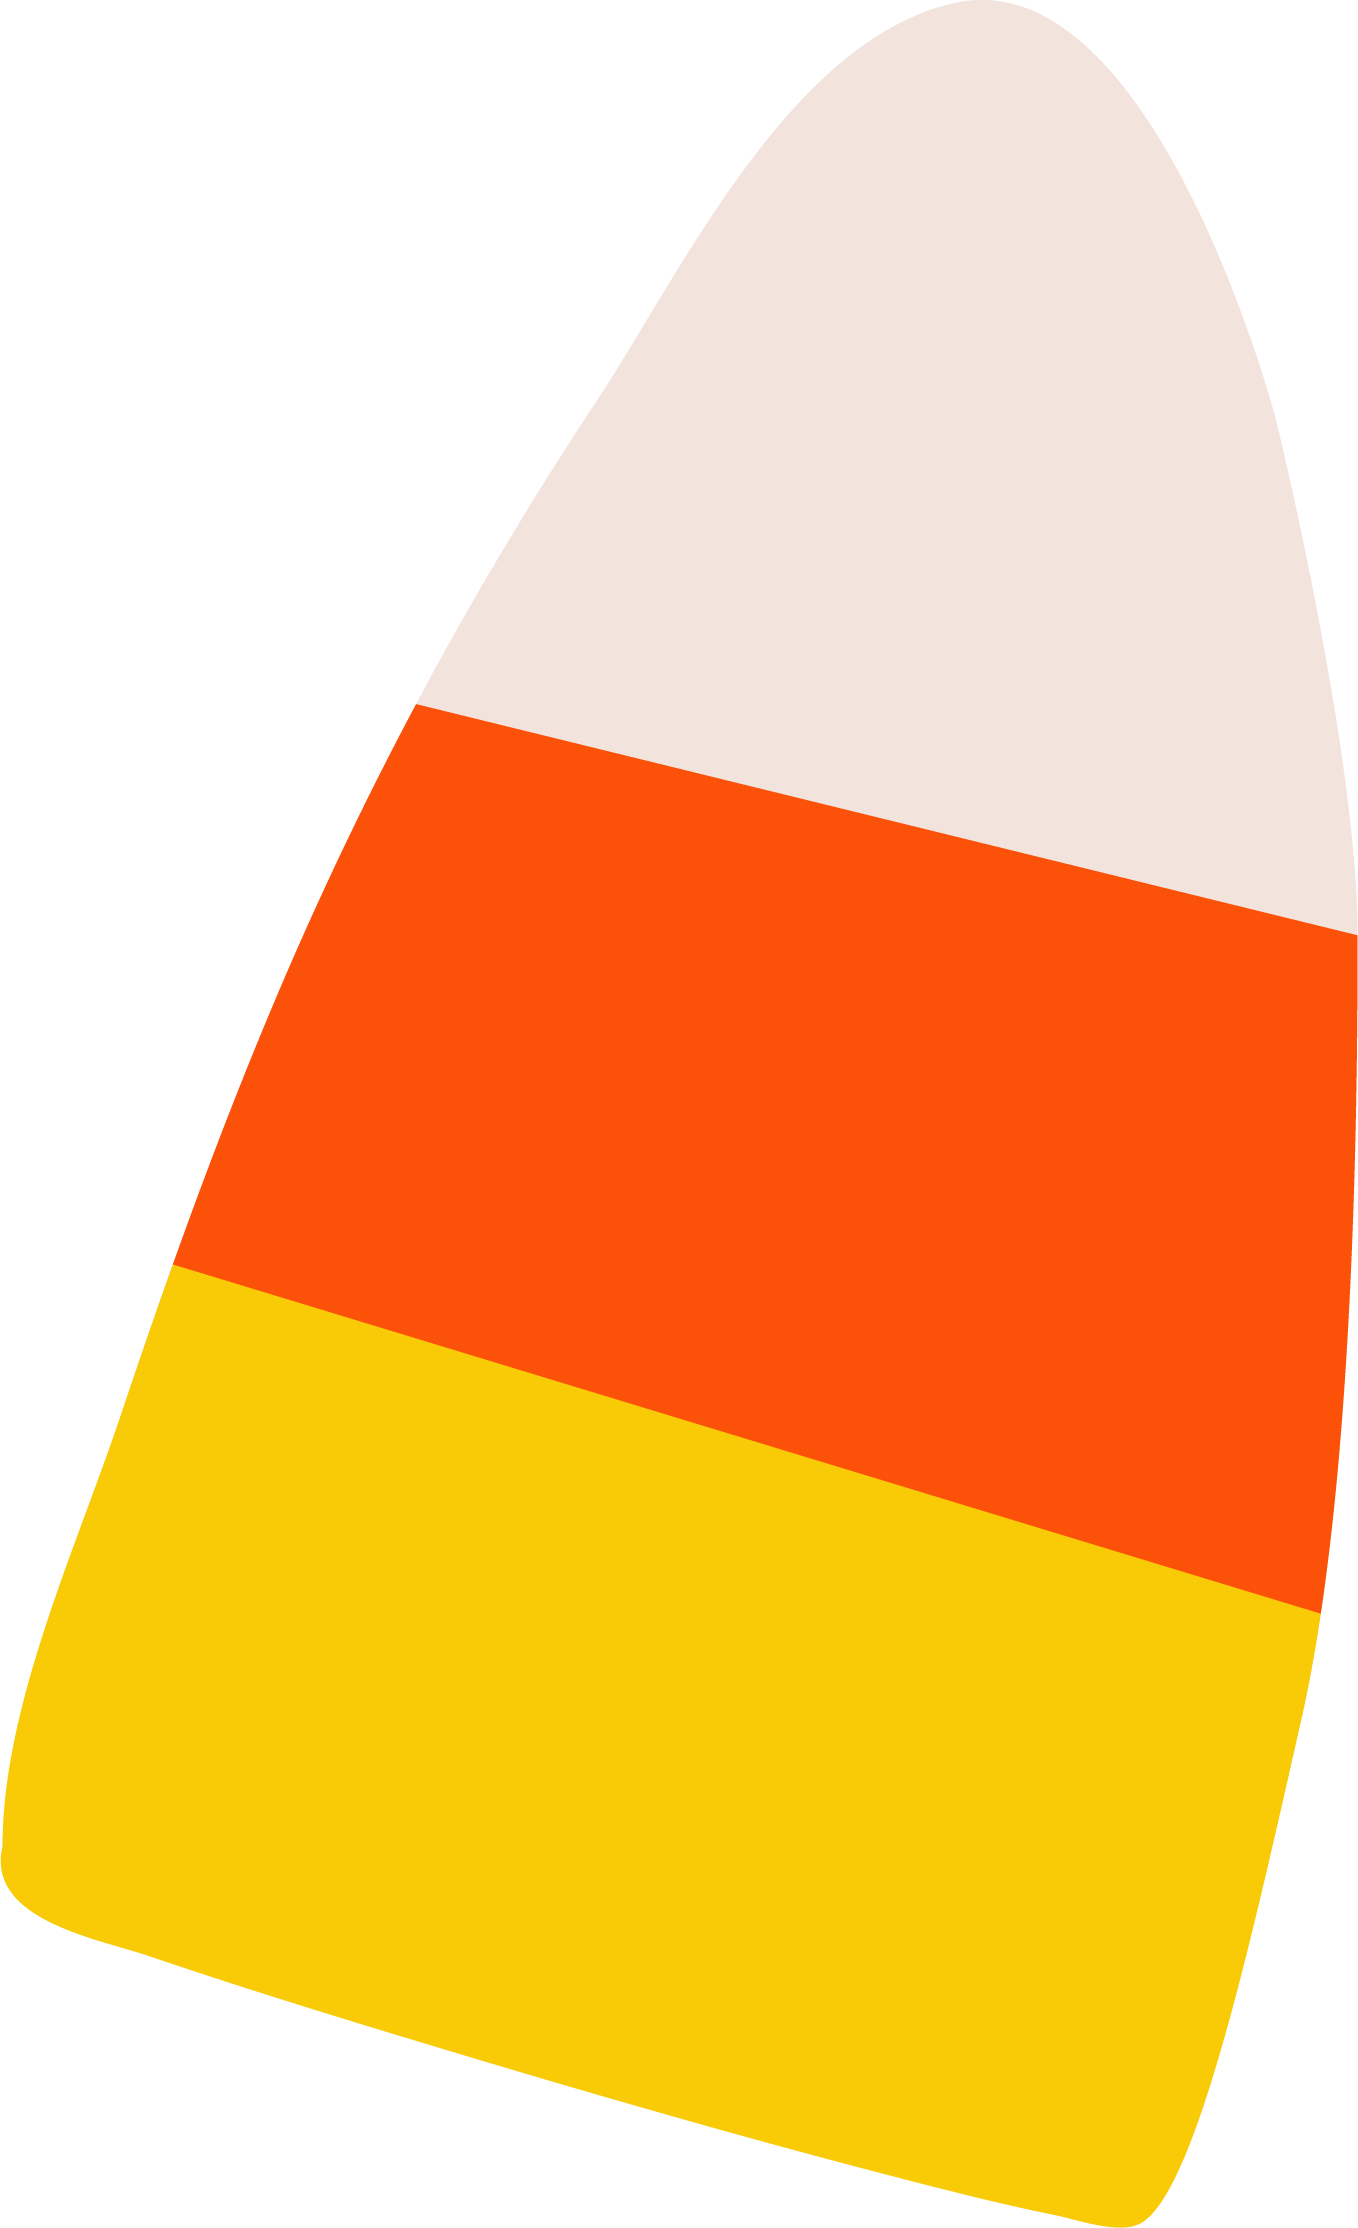 Candy Corn SVG Cut File